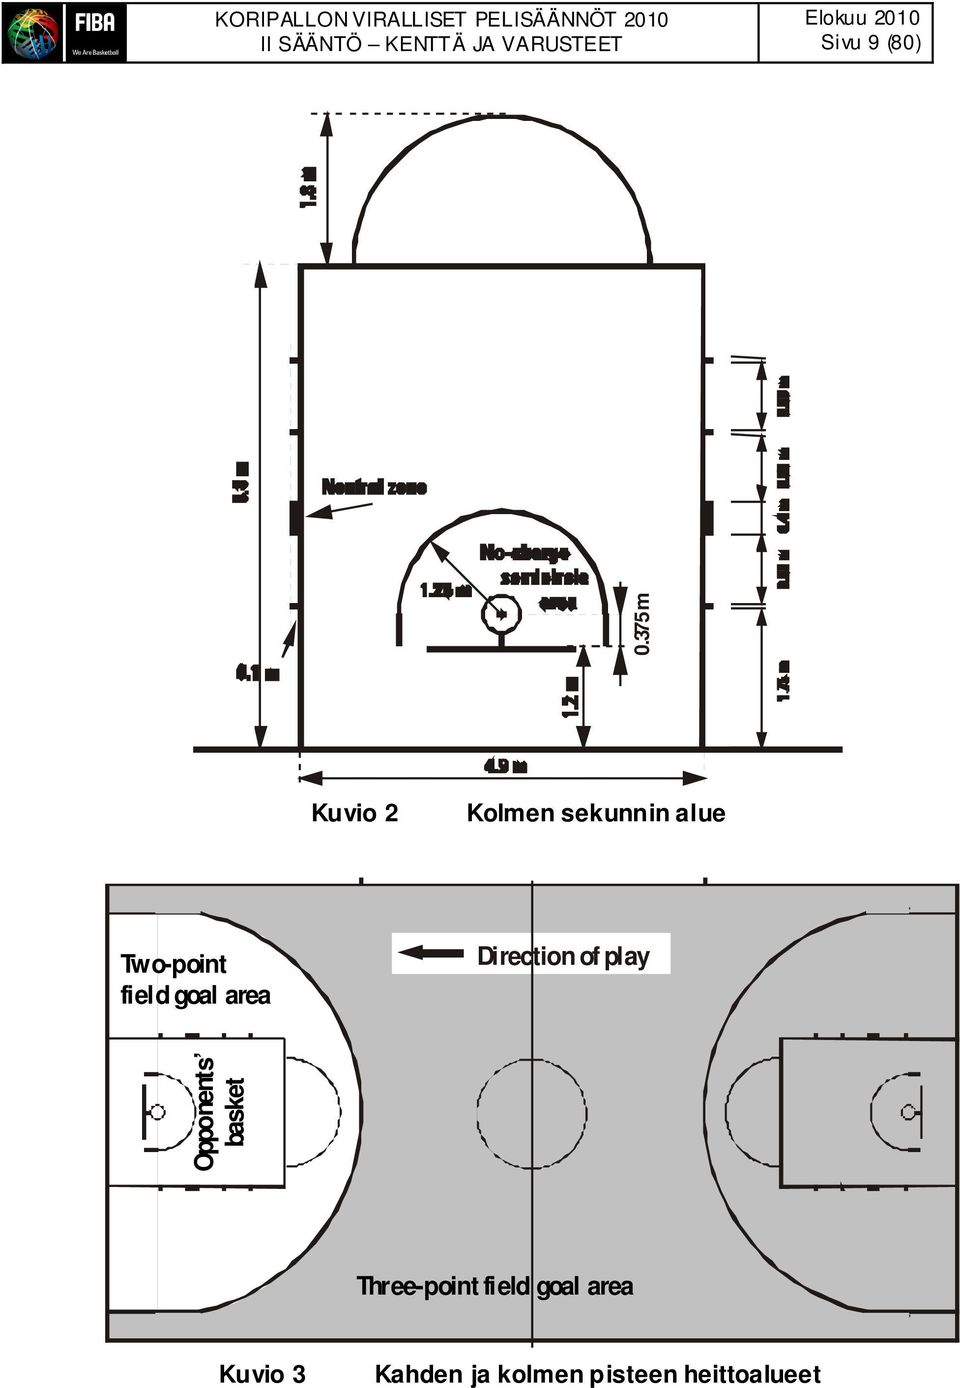 area Direction of play Opponents basket Three-point